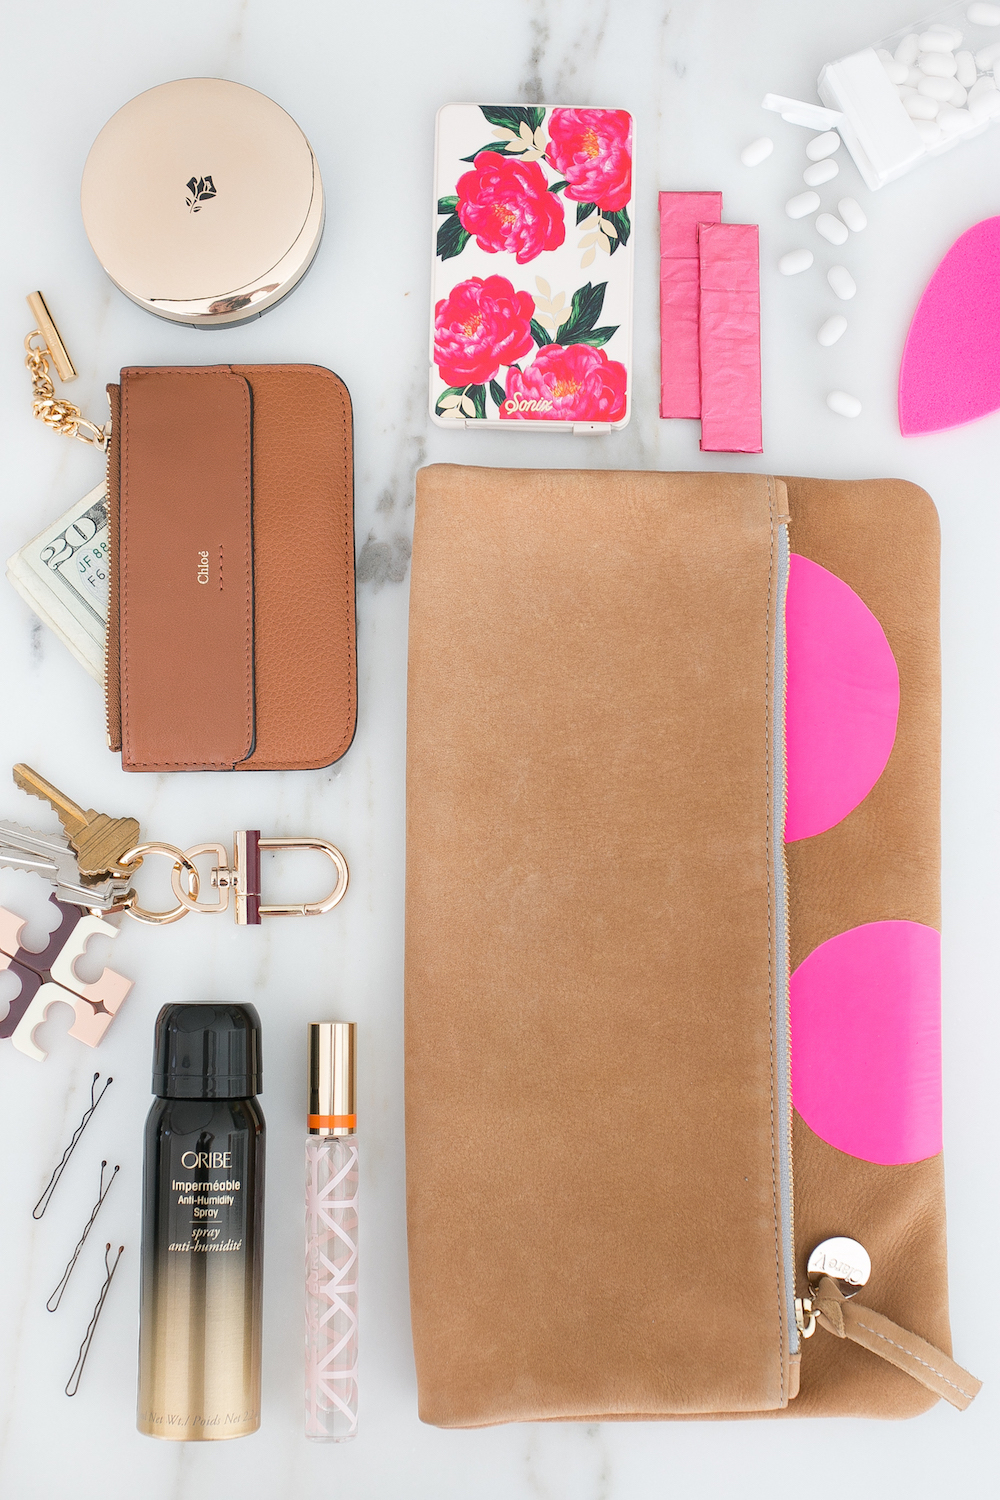 Lancome Oribe Flat Lay Chloe Clutch Essentials Make up Monika Hibbs